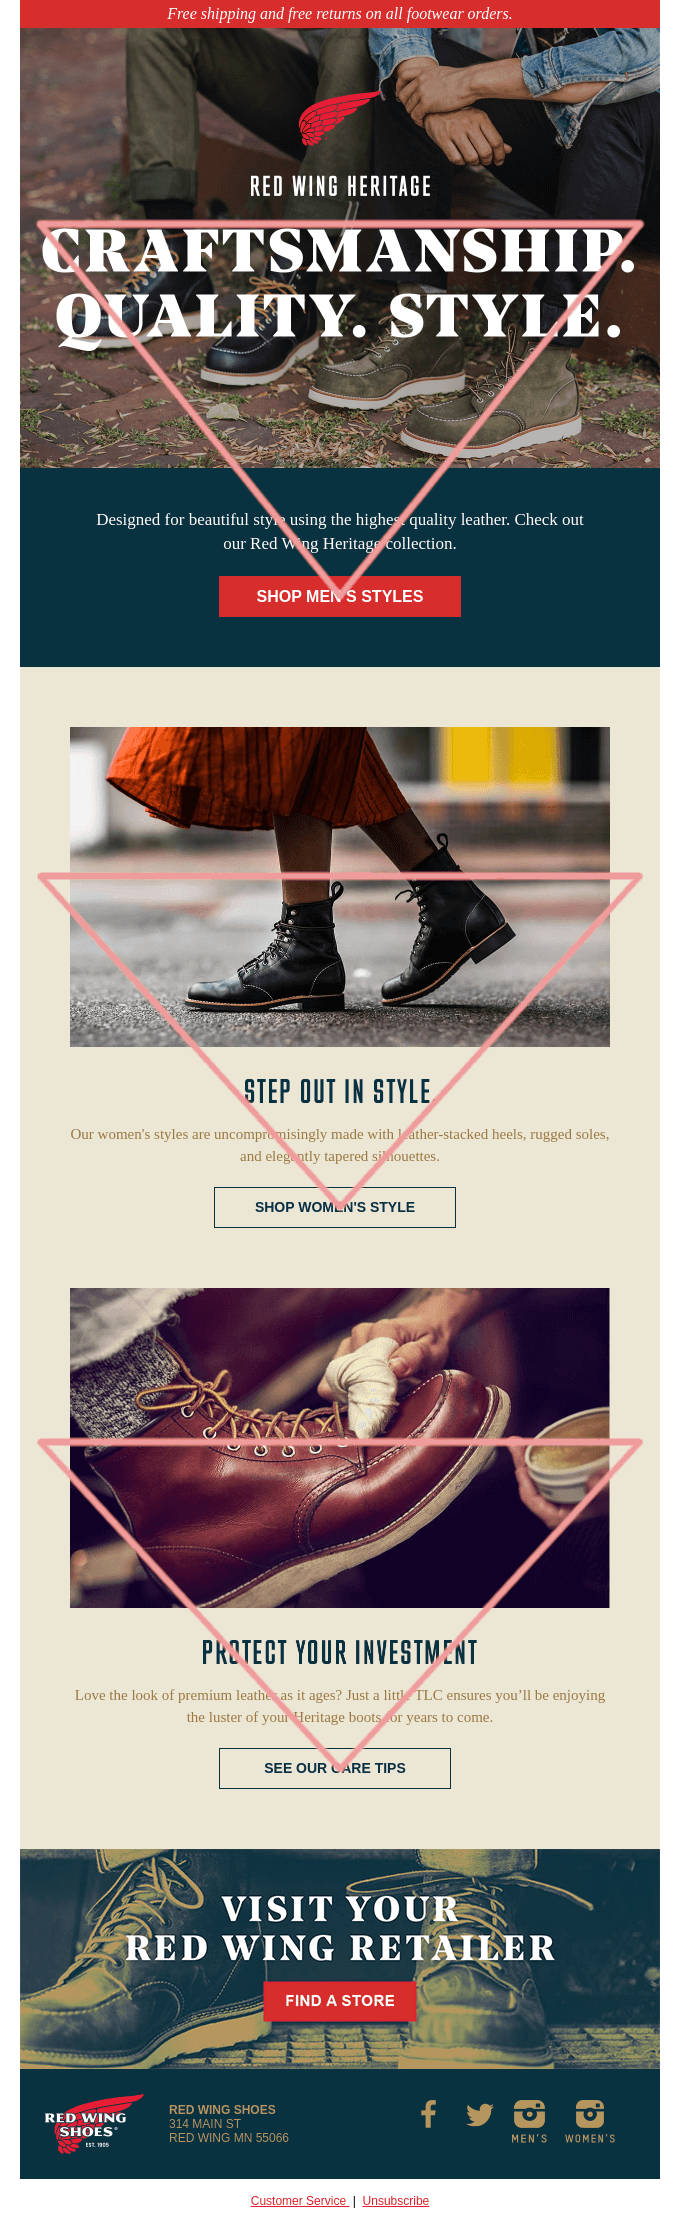 red wing heritage example for an inverted pyramid email design